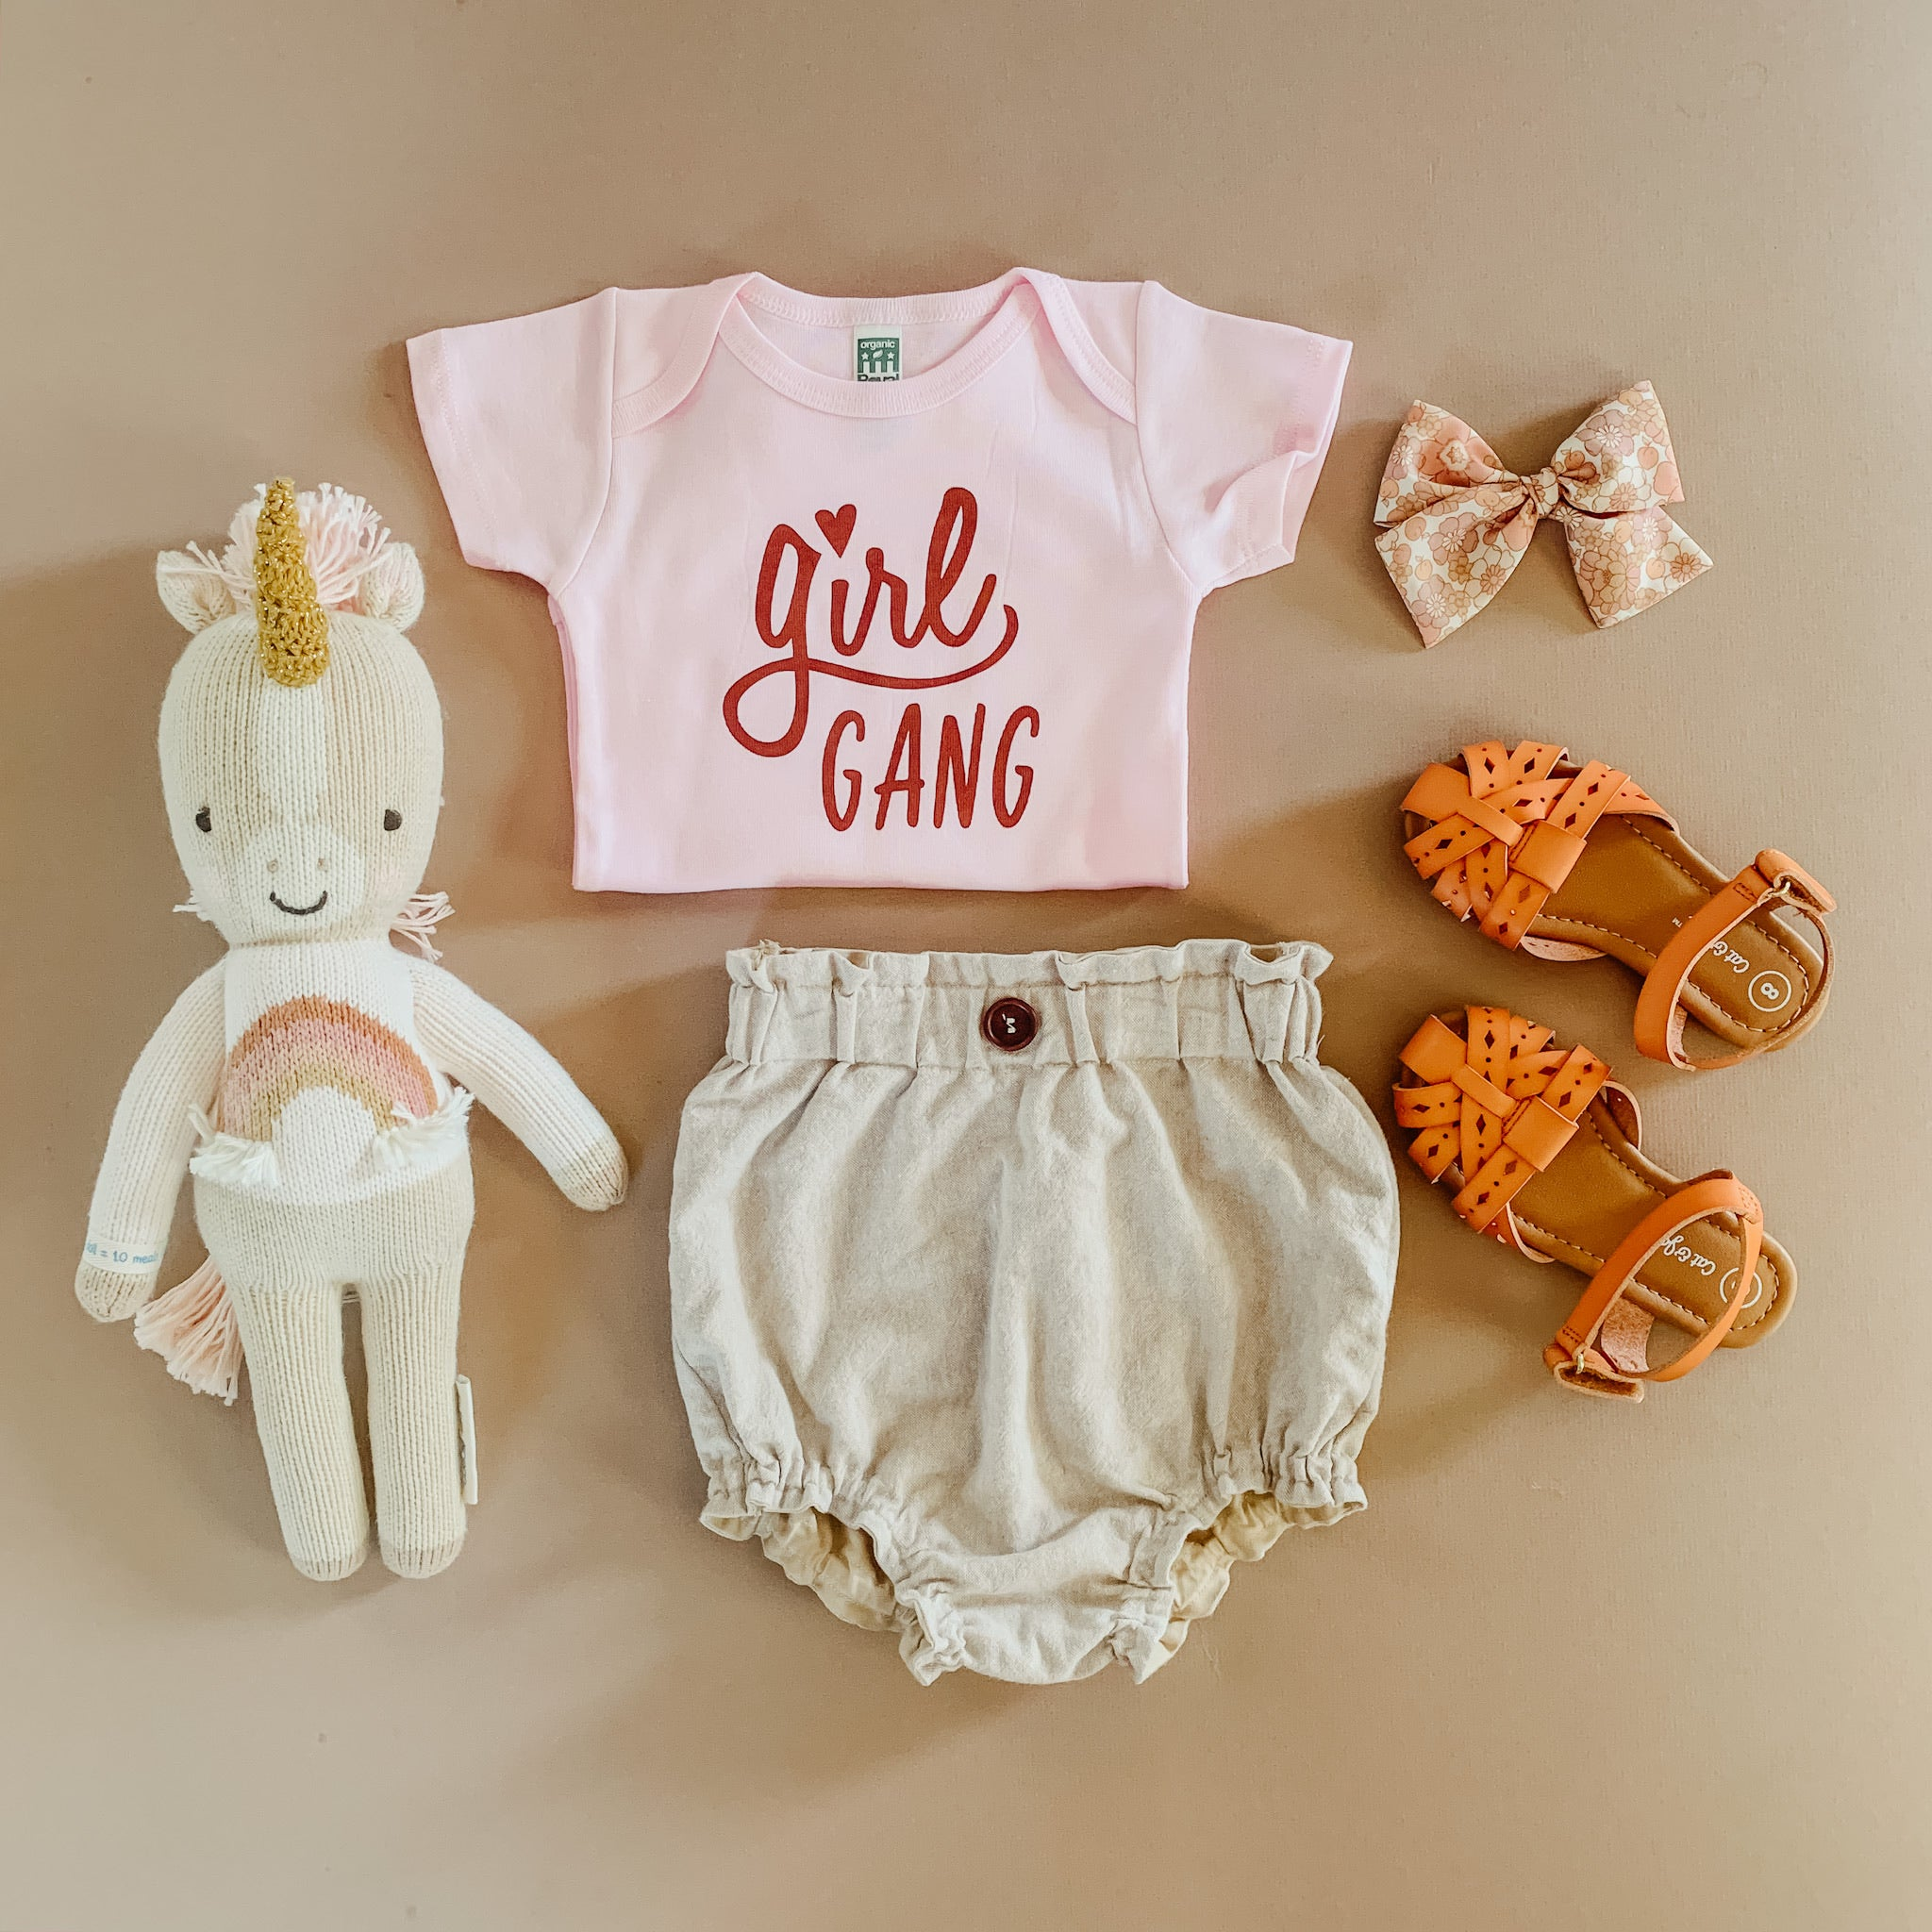 Girl Gang | Bodysuit | Toddler Tee